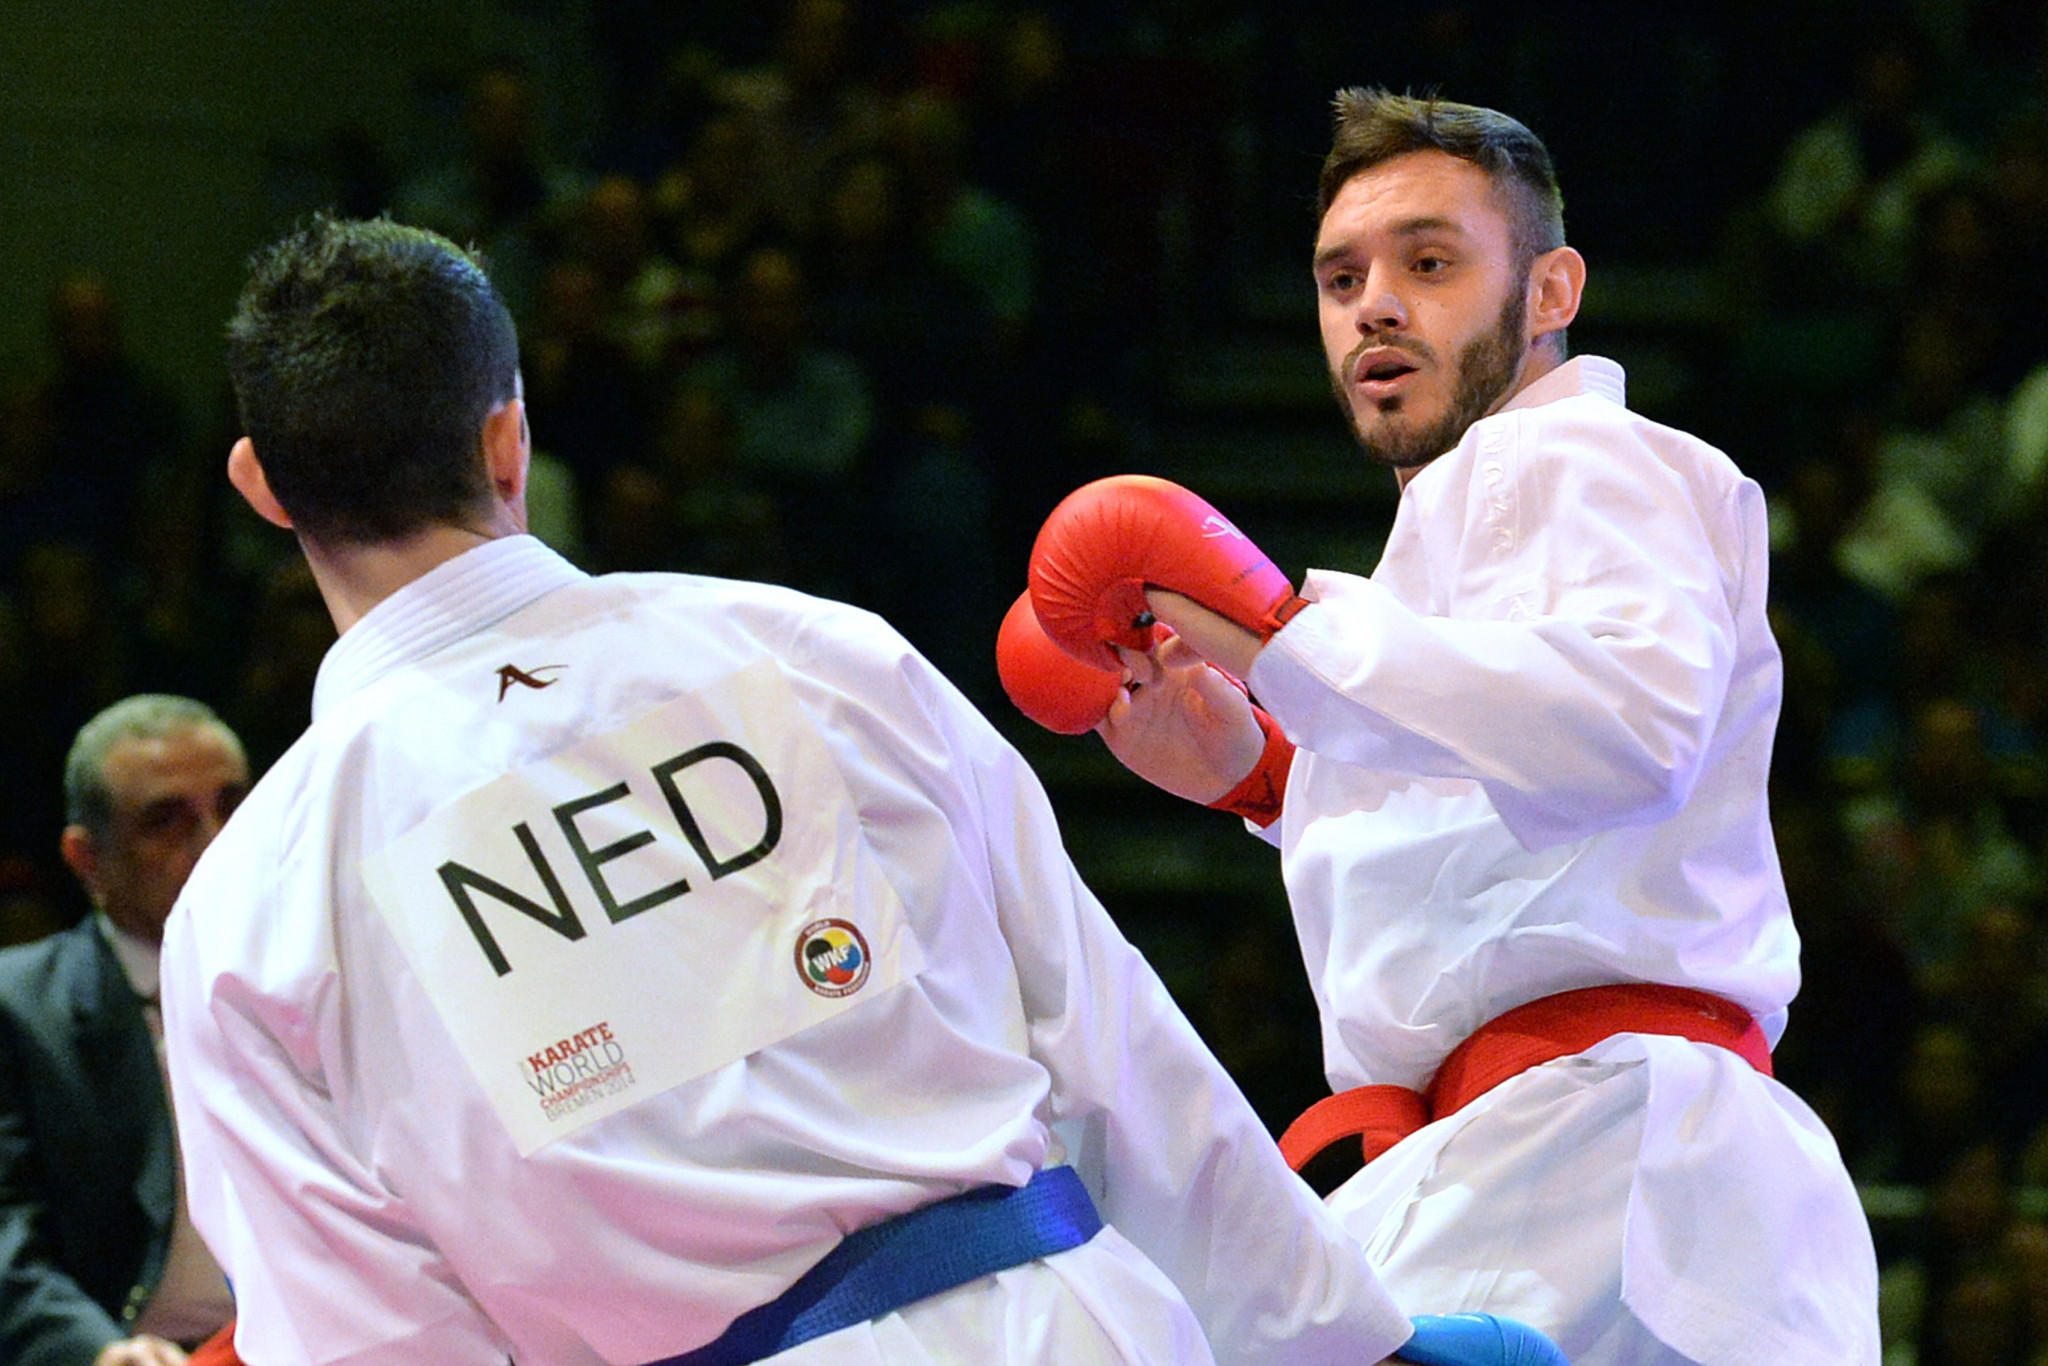 Two-time world champion Brose takes part in second WKF online training session